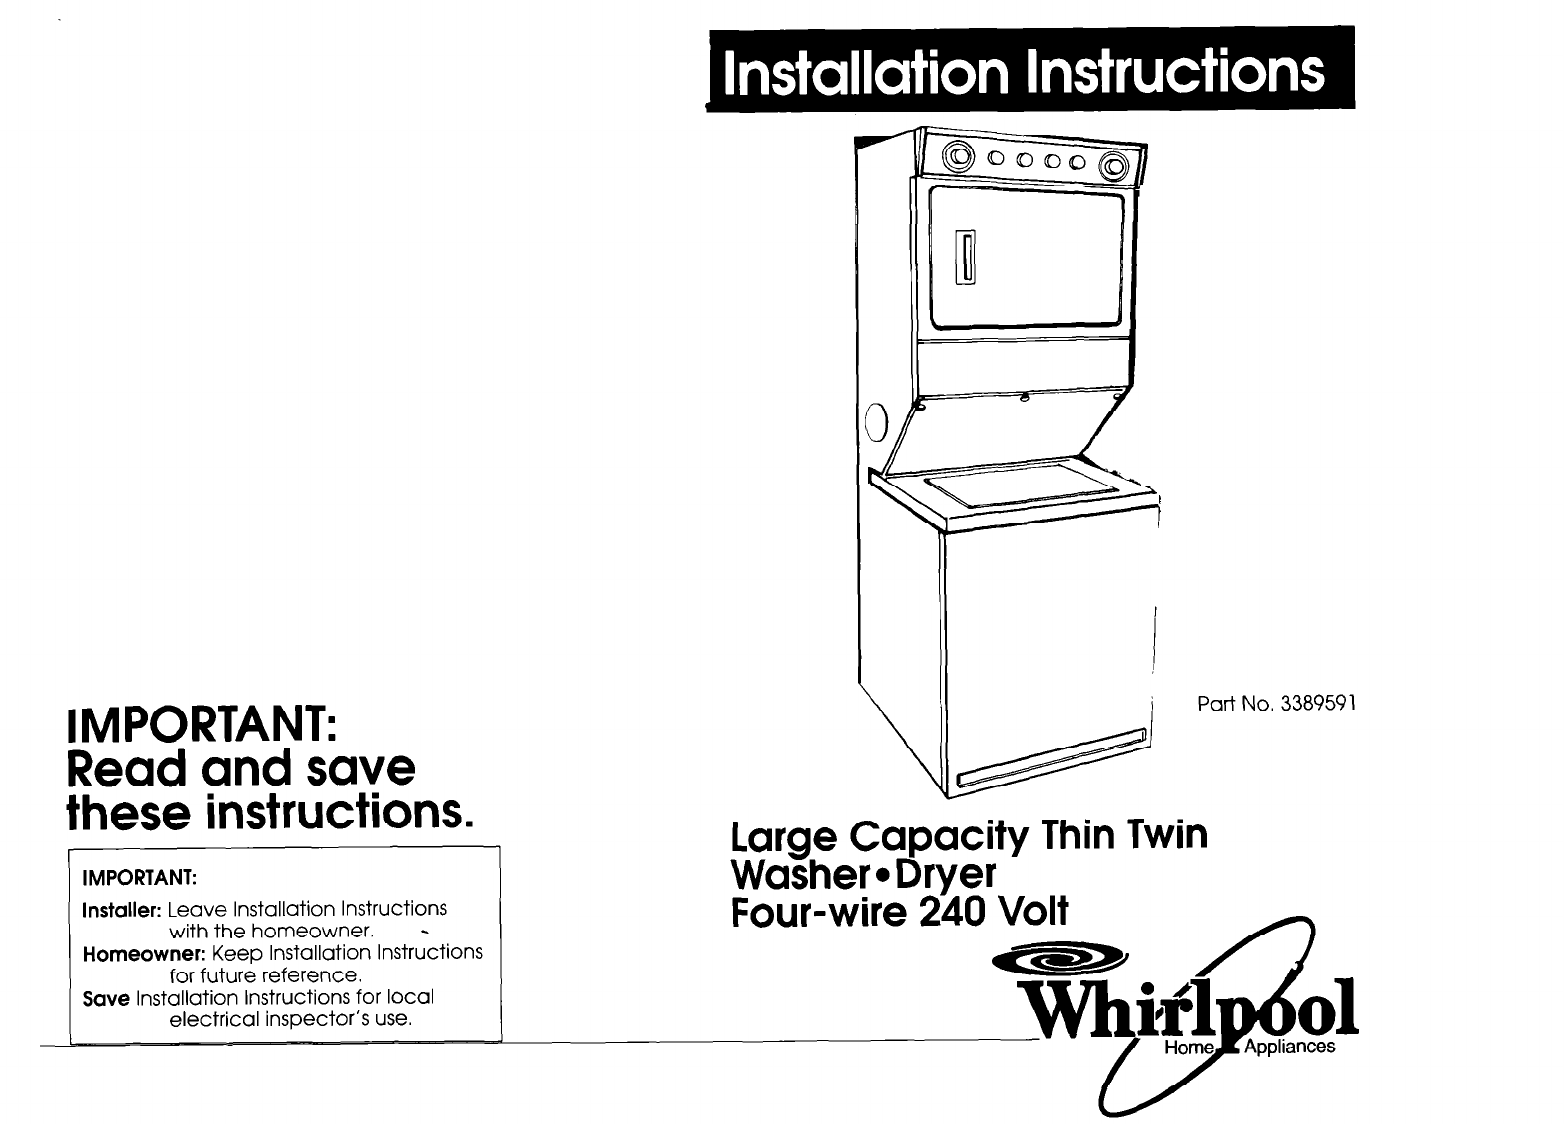 Whirlpool Washer Dryer Instructions